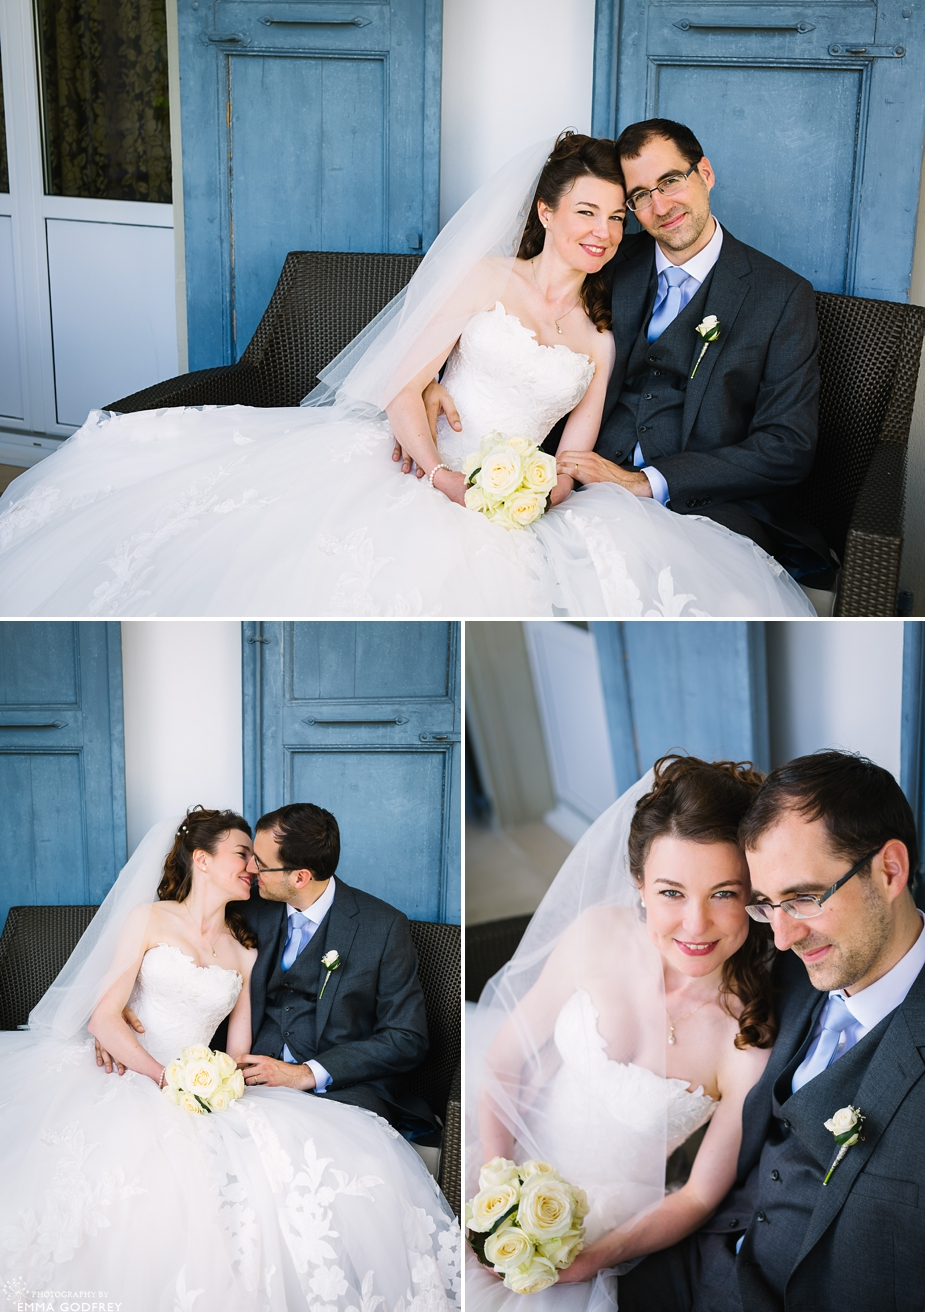 22-Swiss-Wedding-photographer-Vevey.jpg